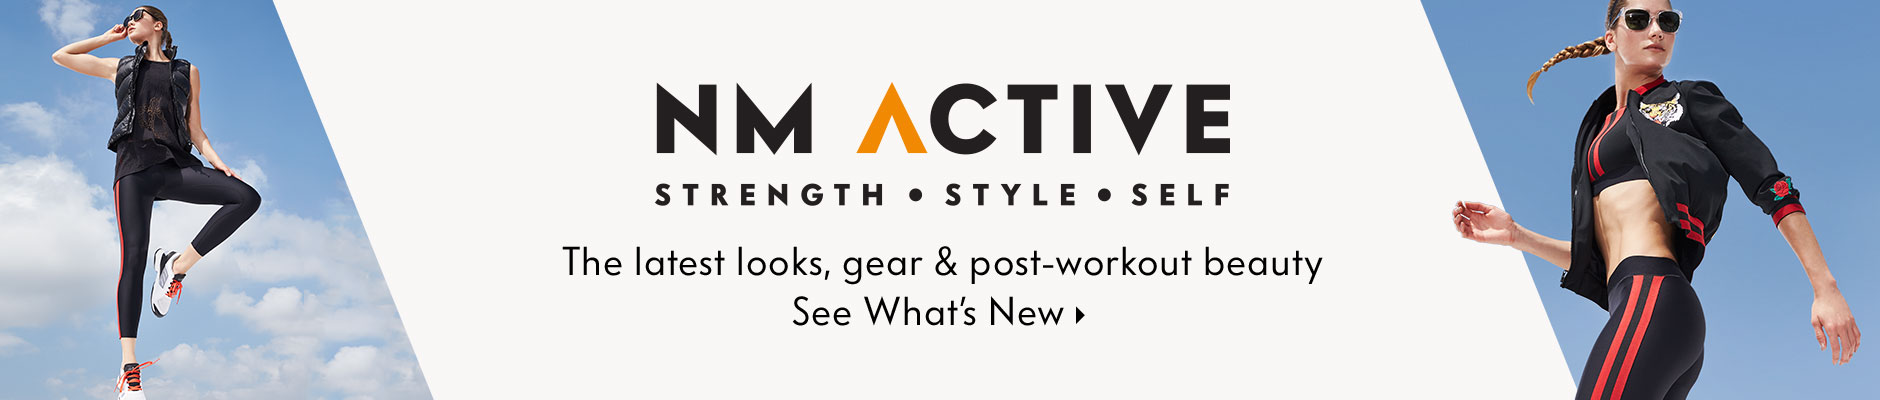 NM Active Strength, style, self - The latest looks, gear & post-workout beauty - see what's new